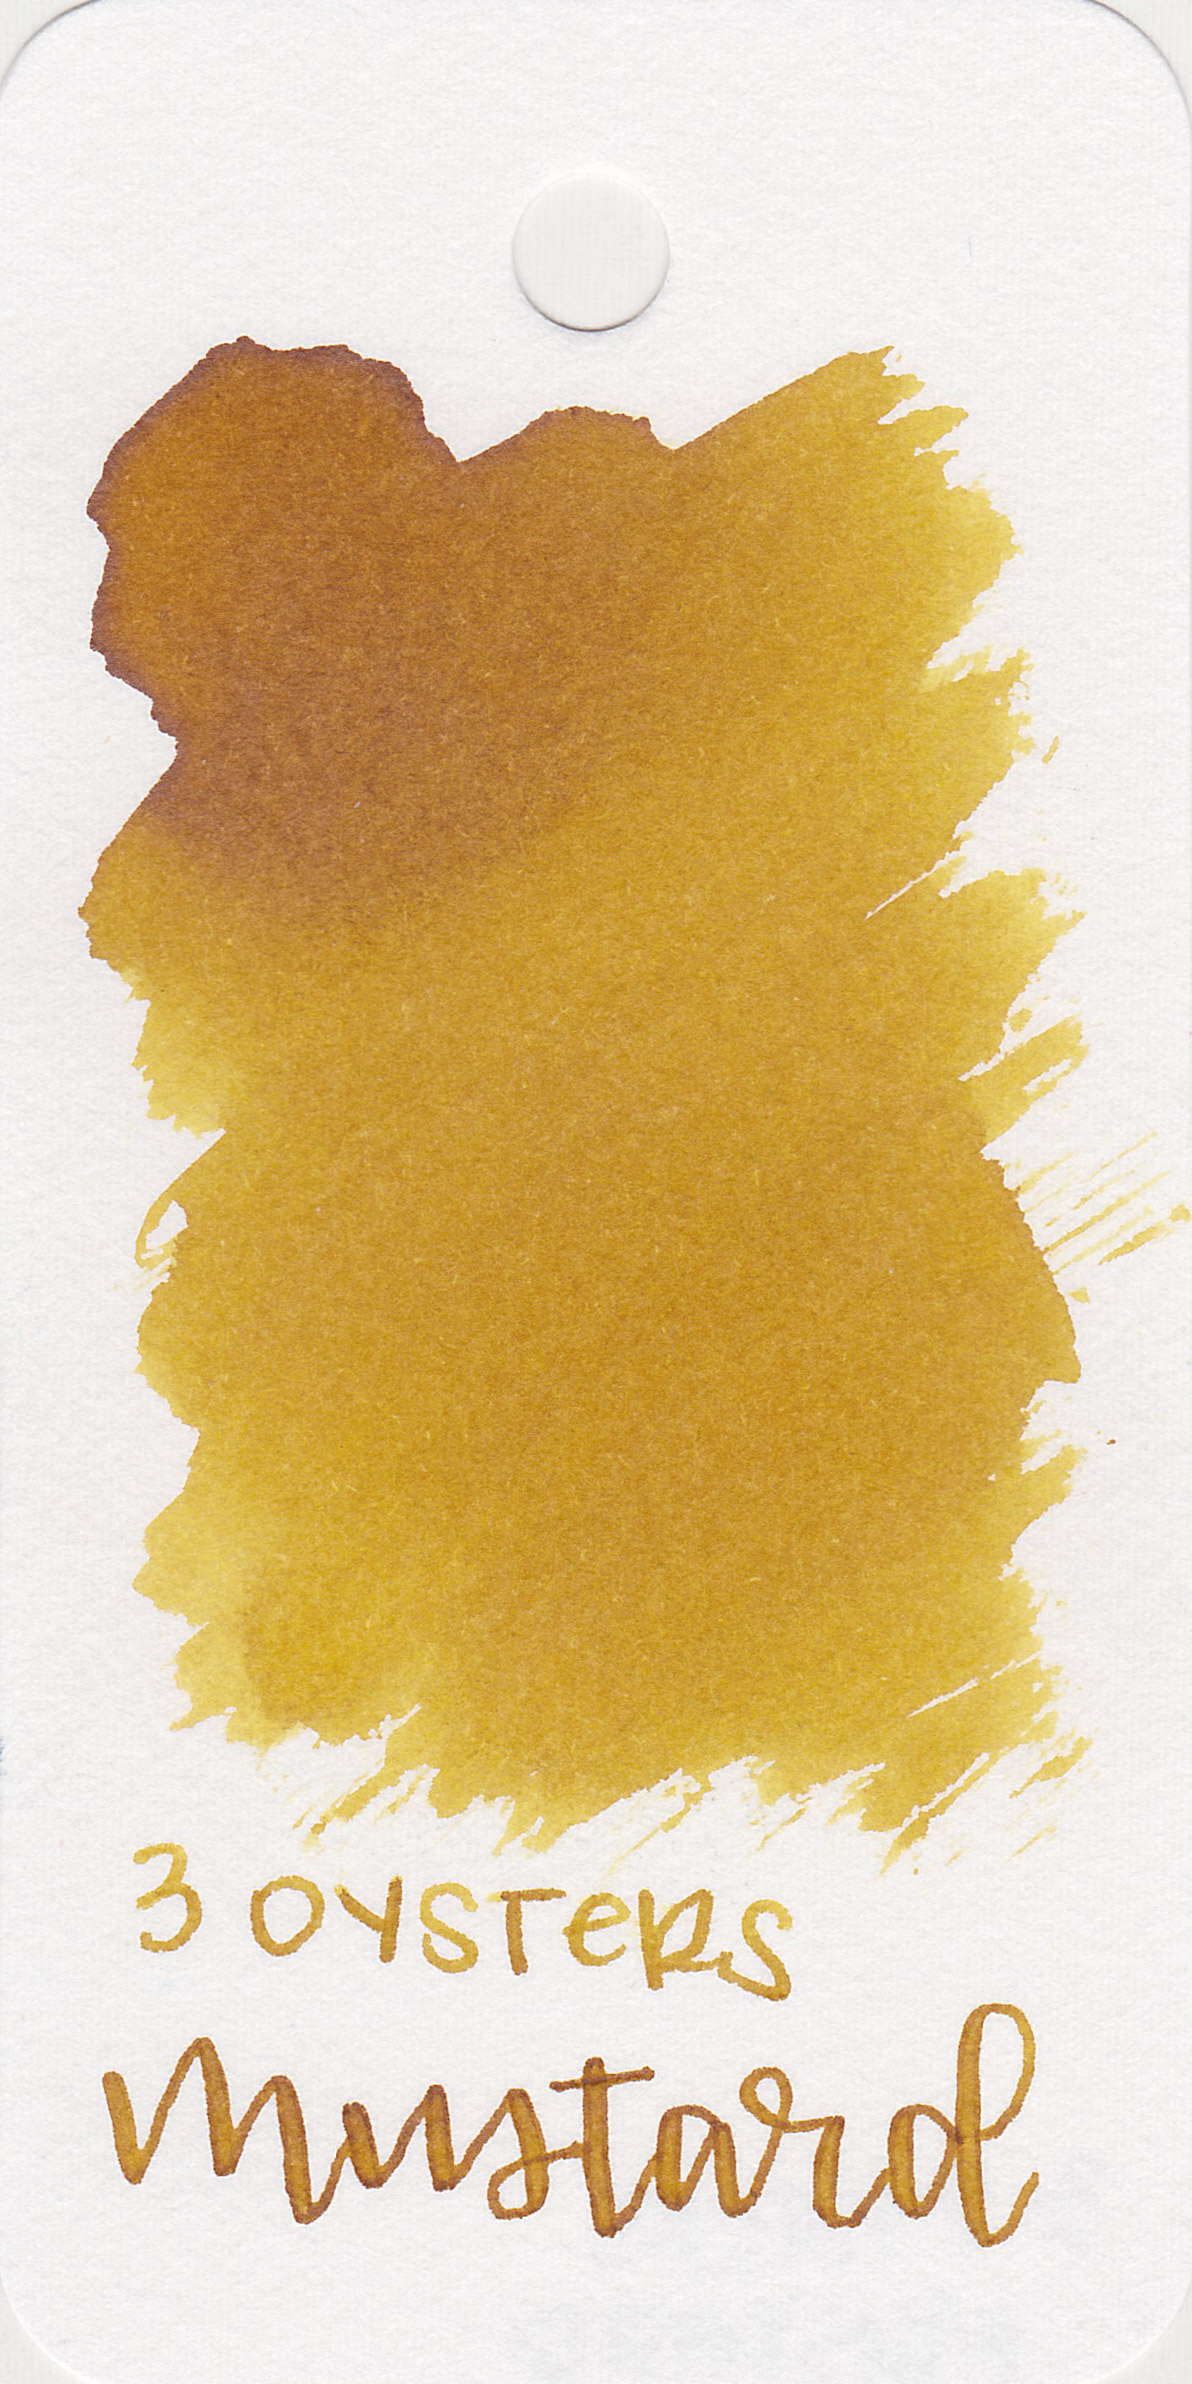 The color: - Mustard is just that-mustard yellow.